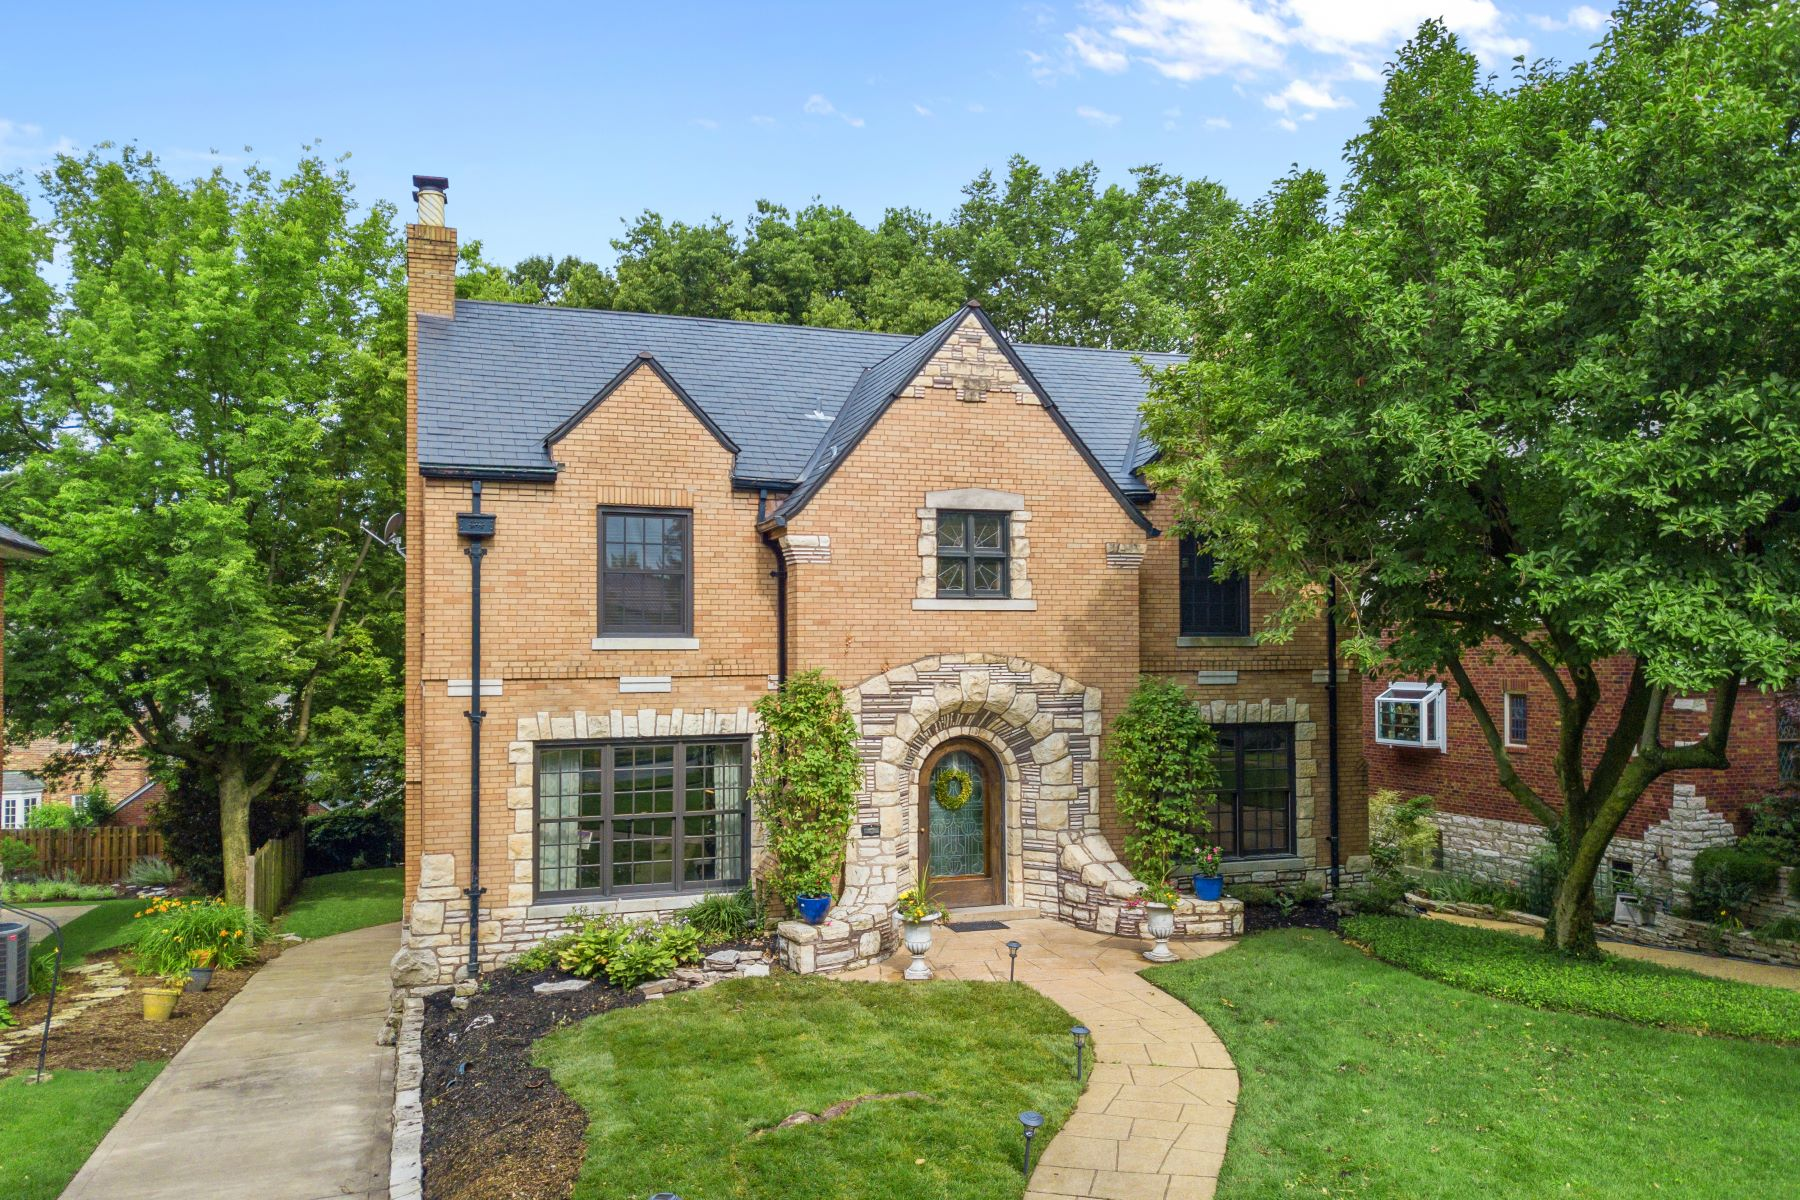 Property for Sale at Classic Clayton Home in Picturesque Setting 65 Crestwood Drive Clayton, Missouri 63105 United States